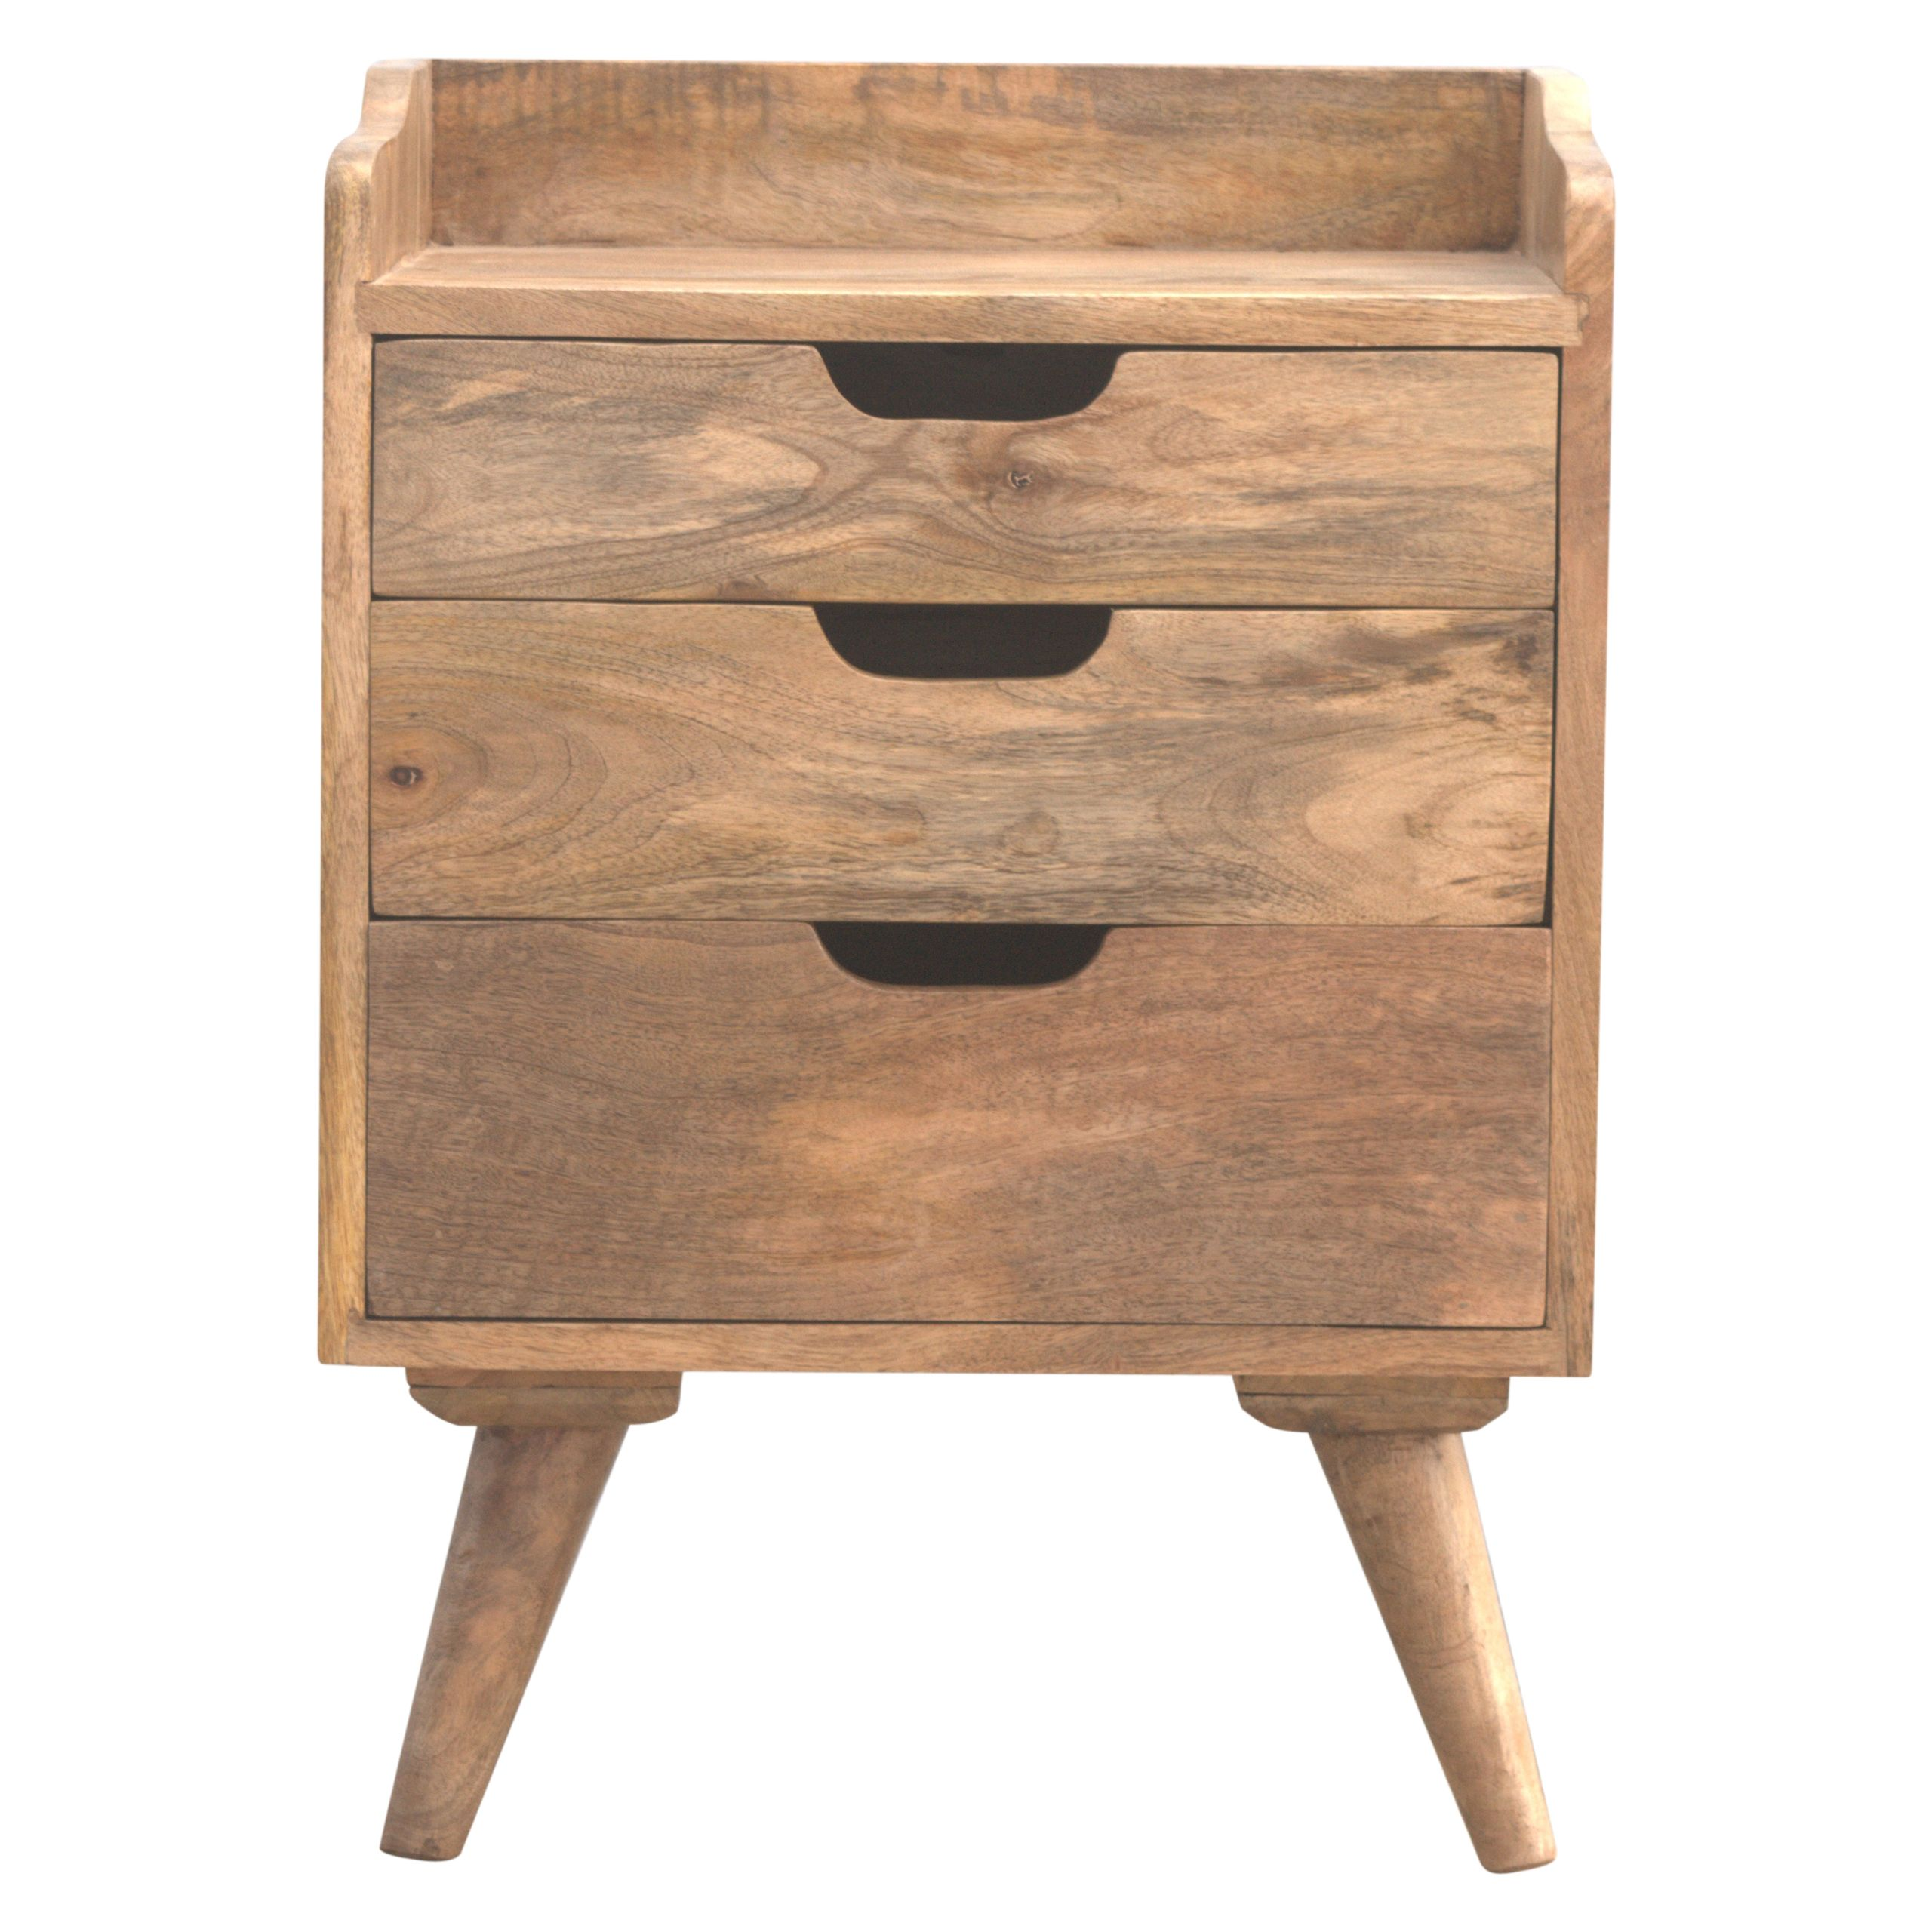 This Bedside Table Makes A Perfect Stand For Nibbles Drinks Or A